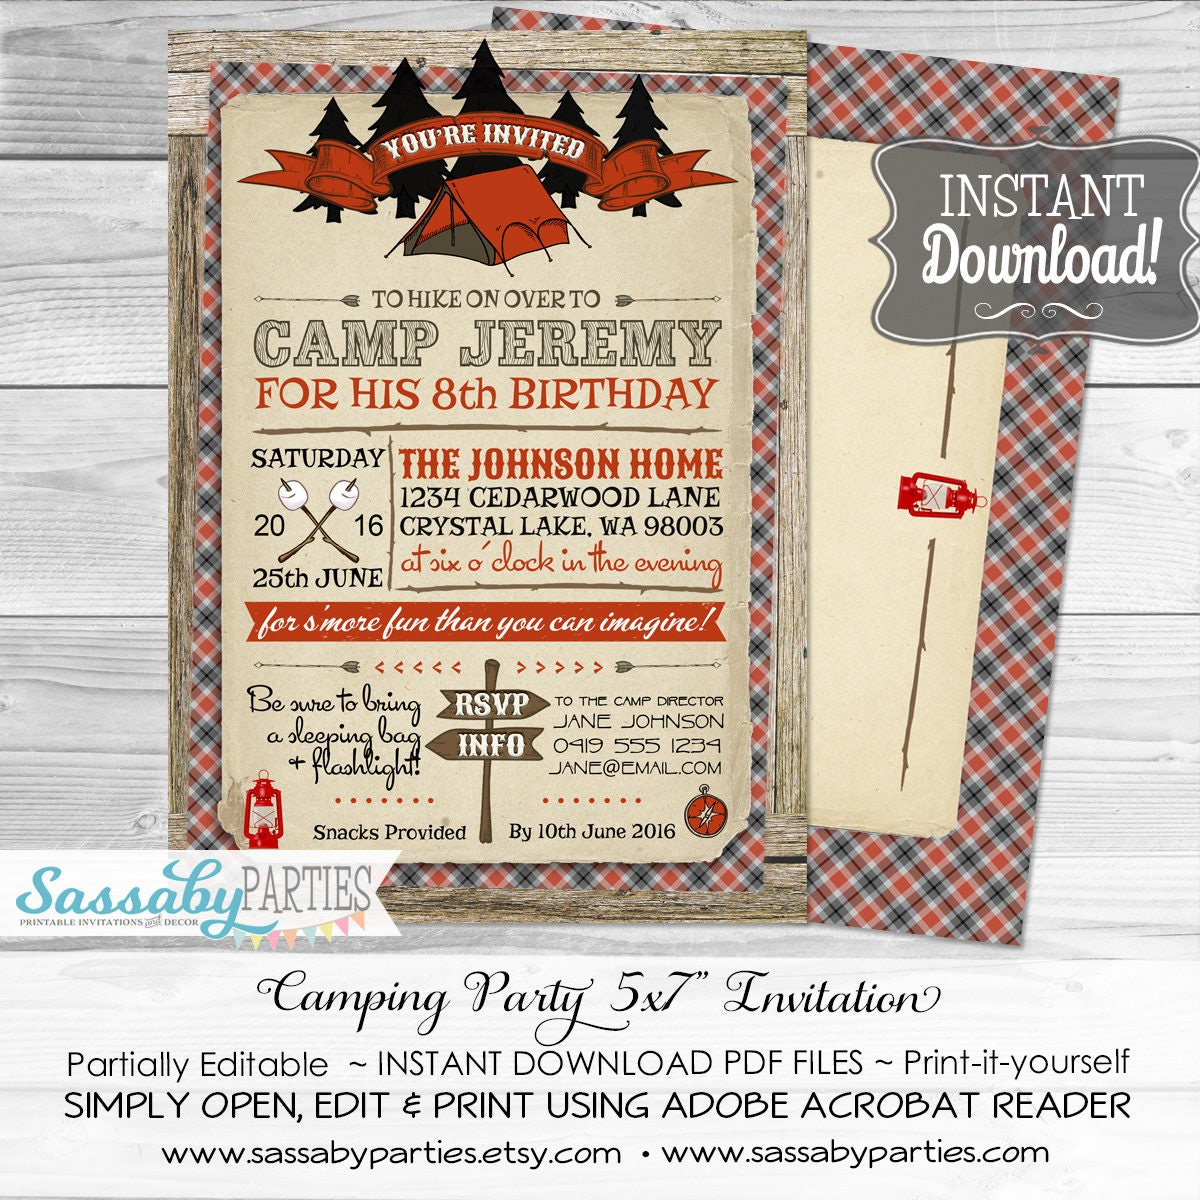 Camping Party Invitation / INSTANT DOWNLOAD / Partially